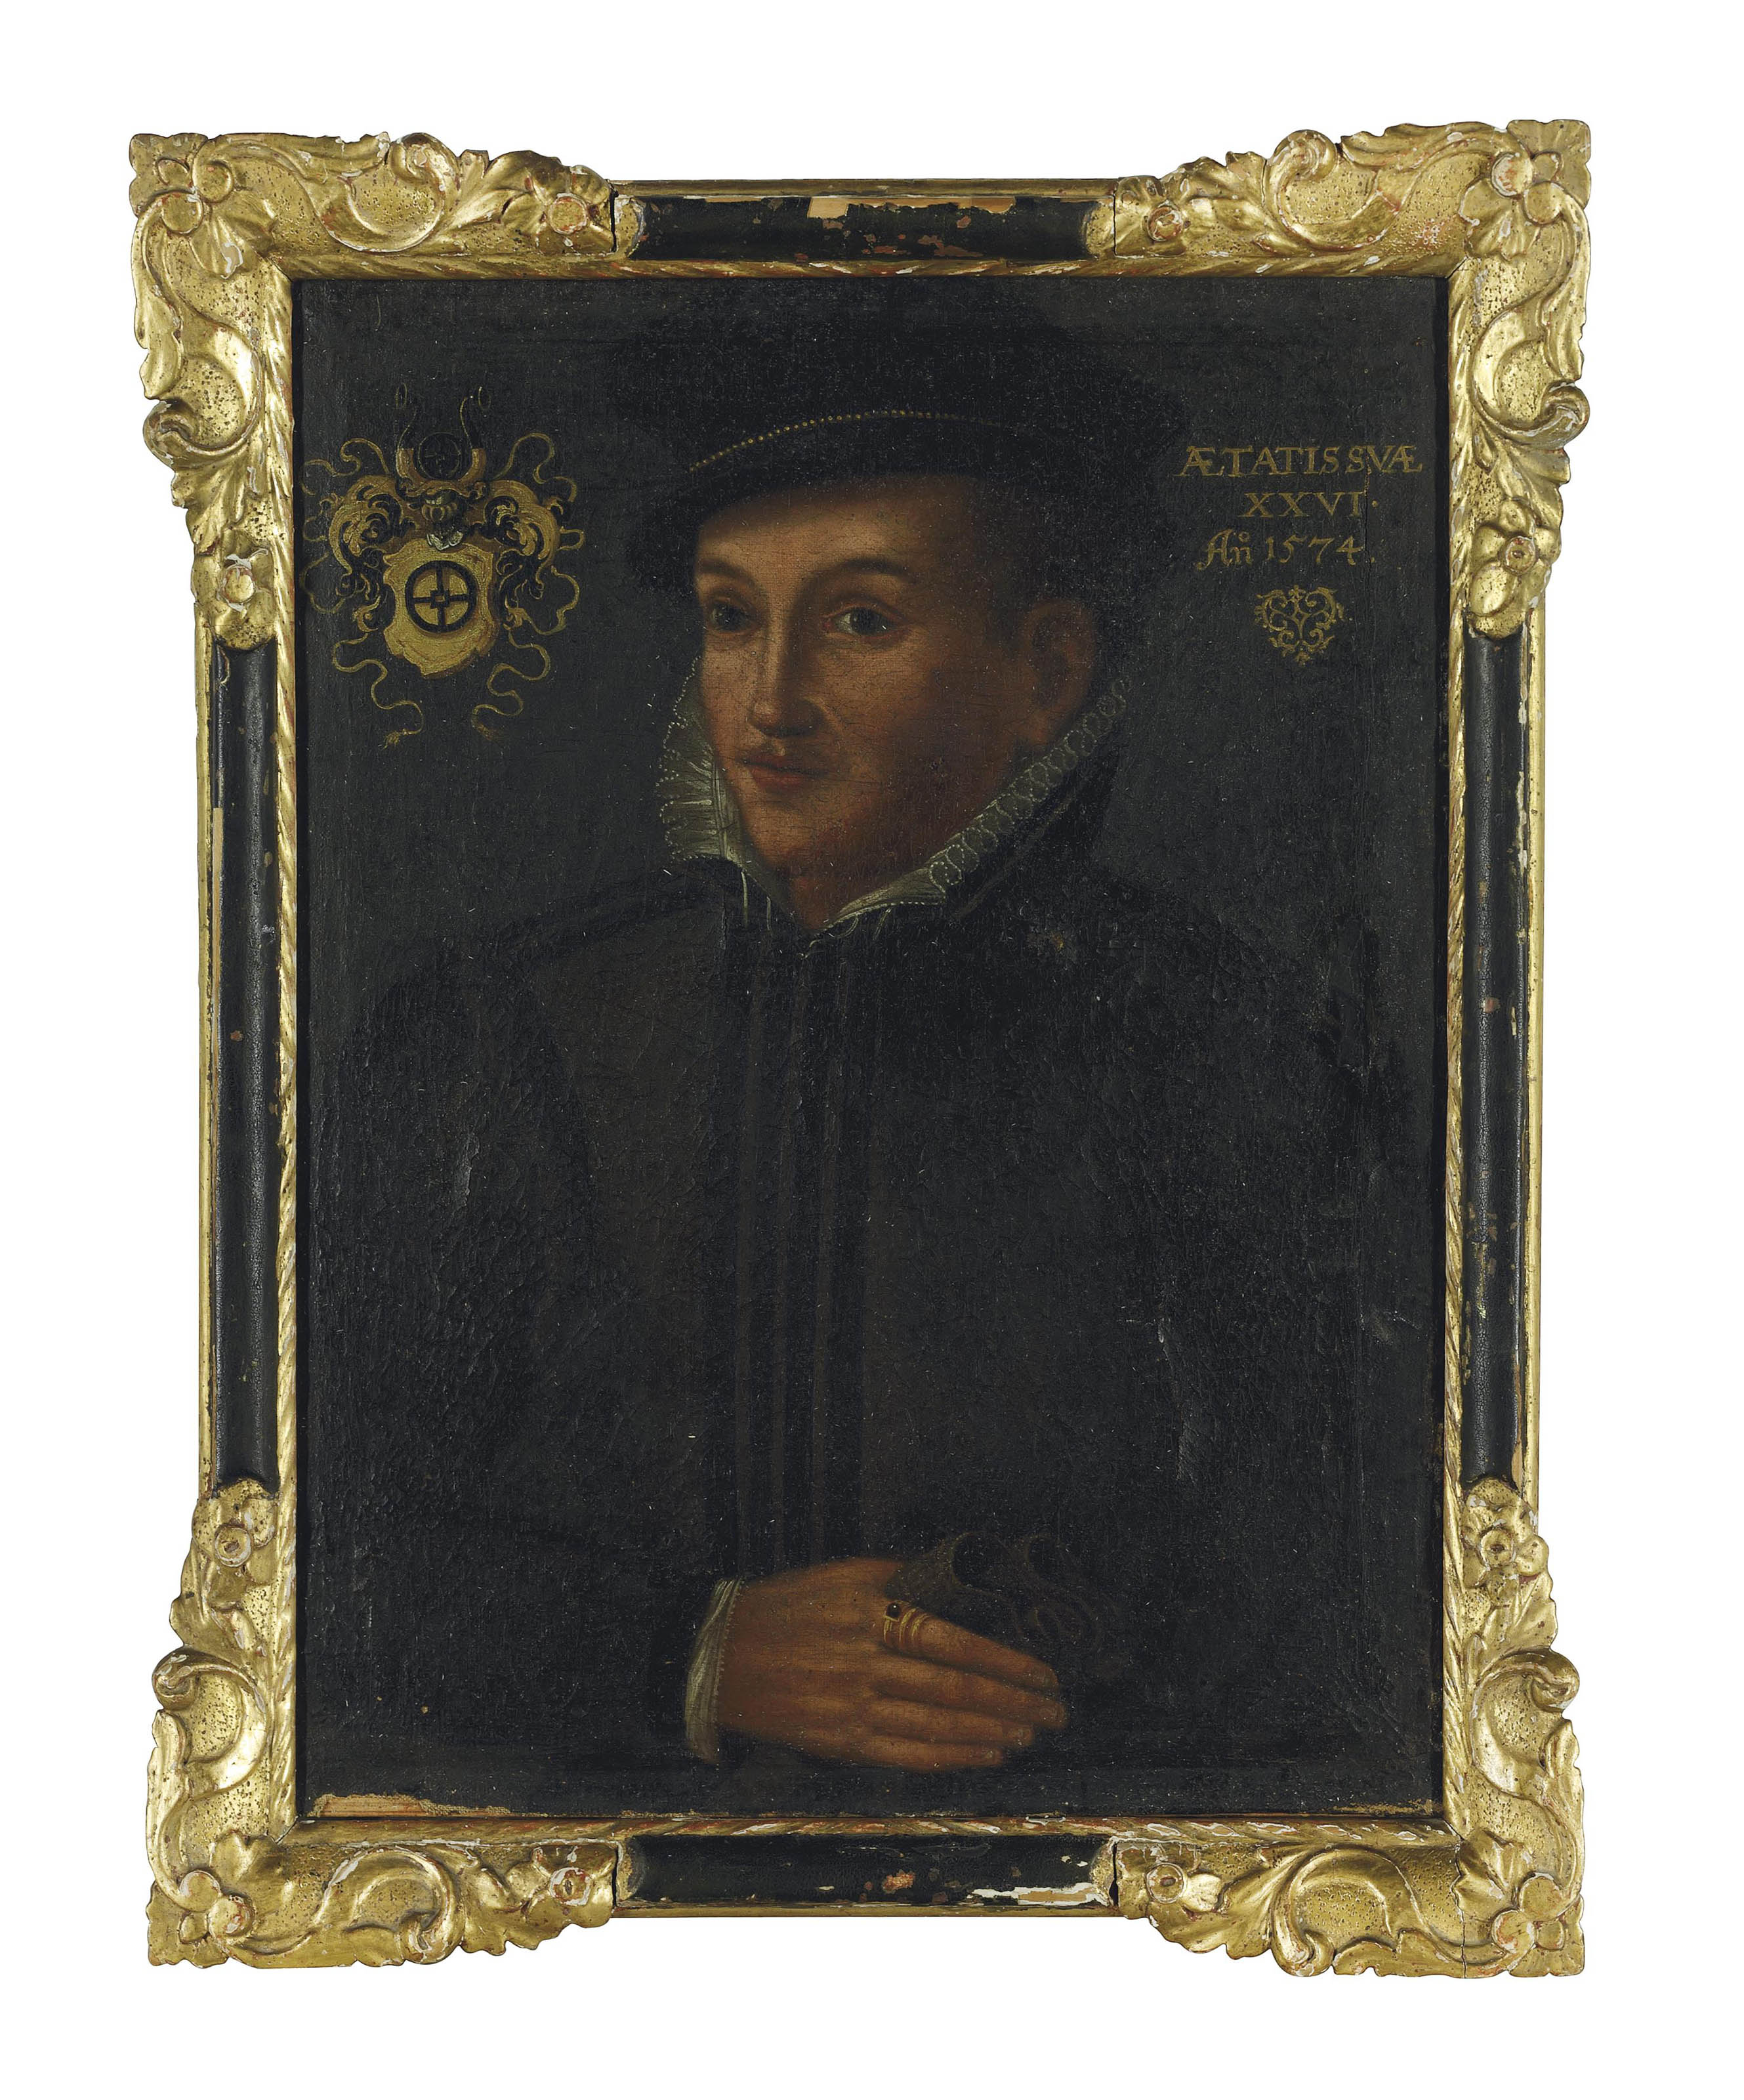 Portrait of a gentleman, possibly Caspar Müller (b. 1548), aged 26, half-length, in a dark doublet and hat and a lace collar, holding a glove in his right hand